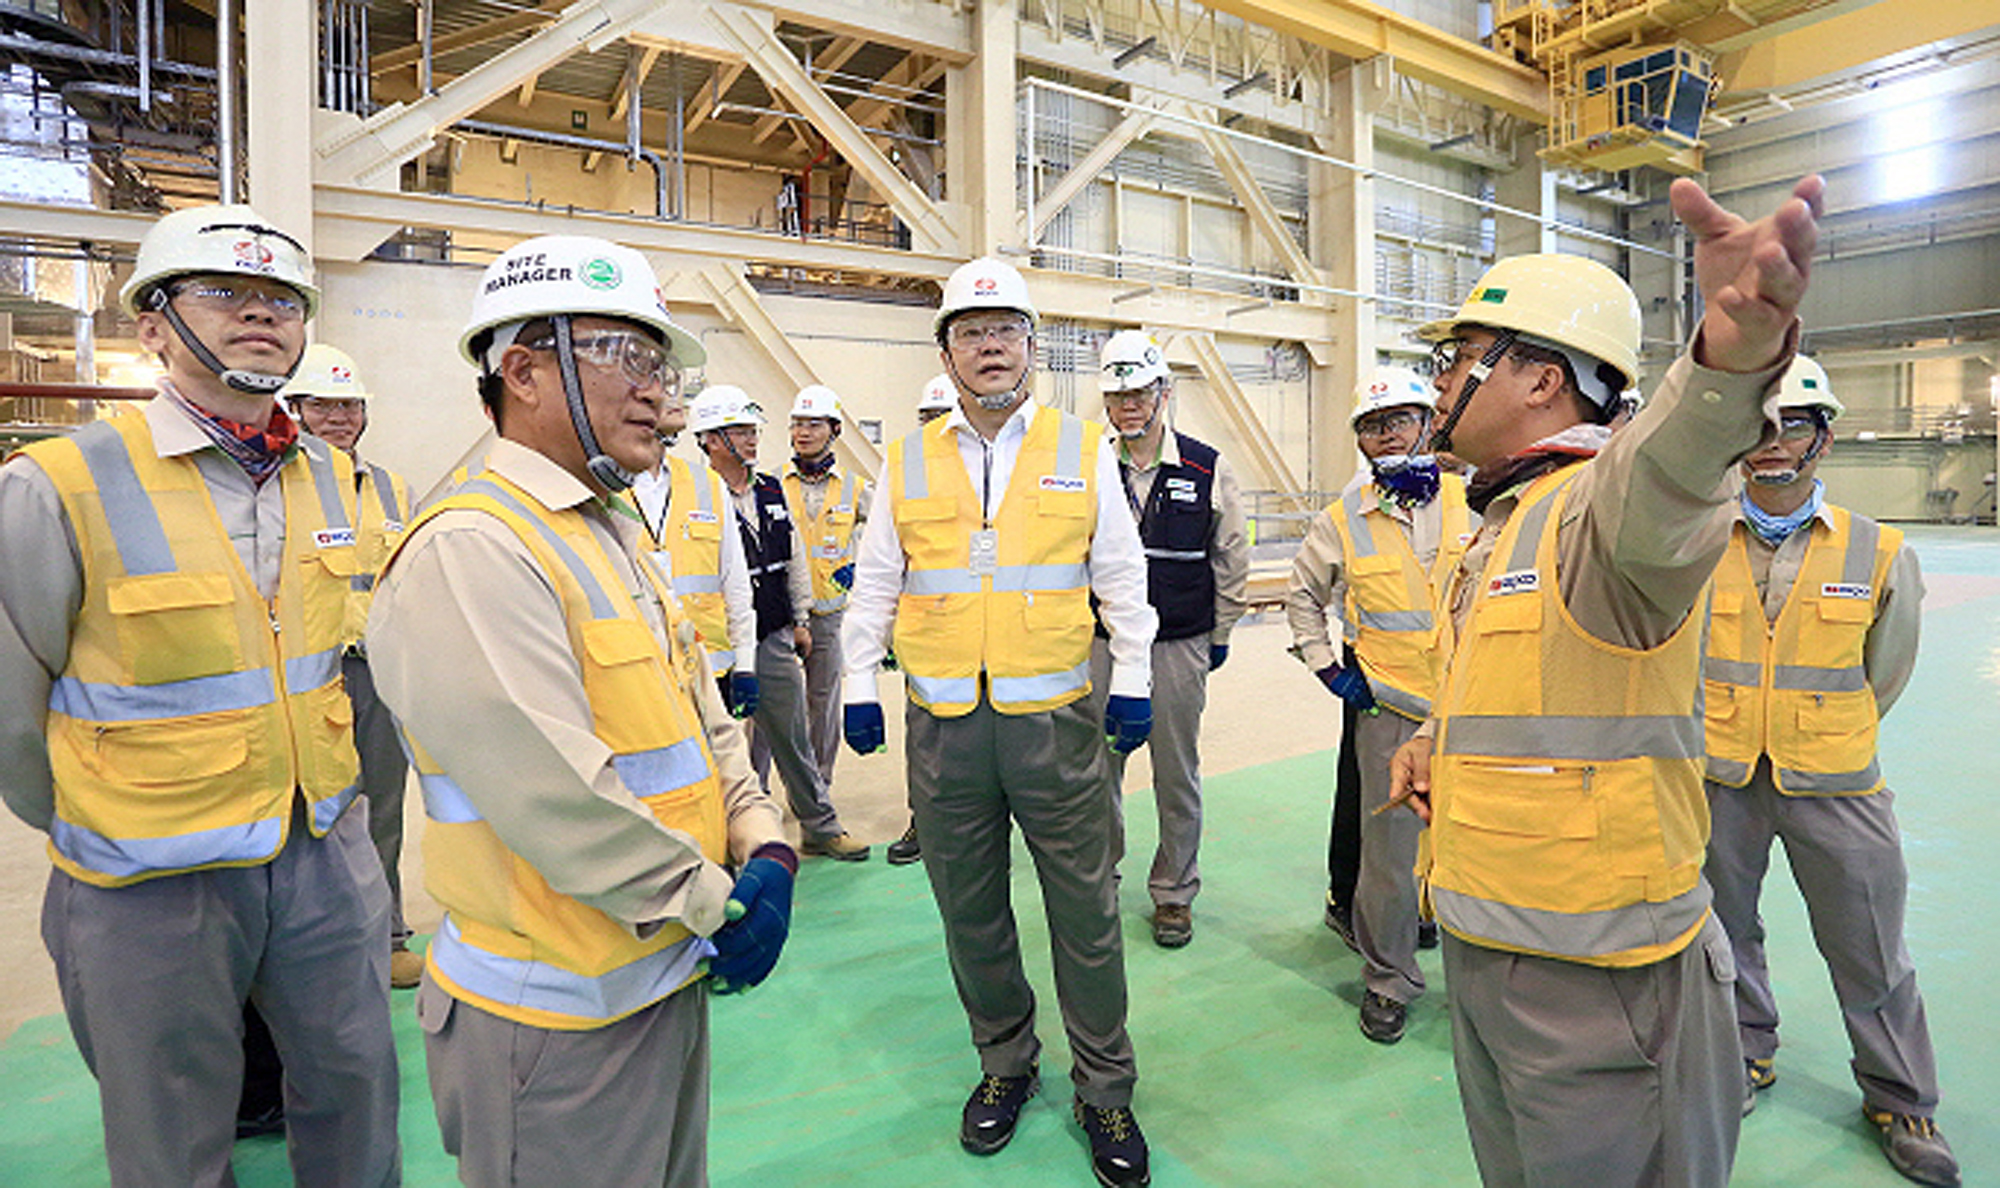 Minister Joo visits UAE nuclear power plant construction site